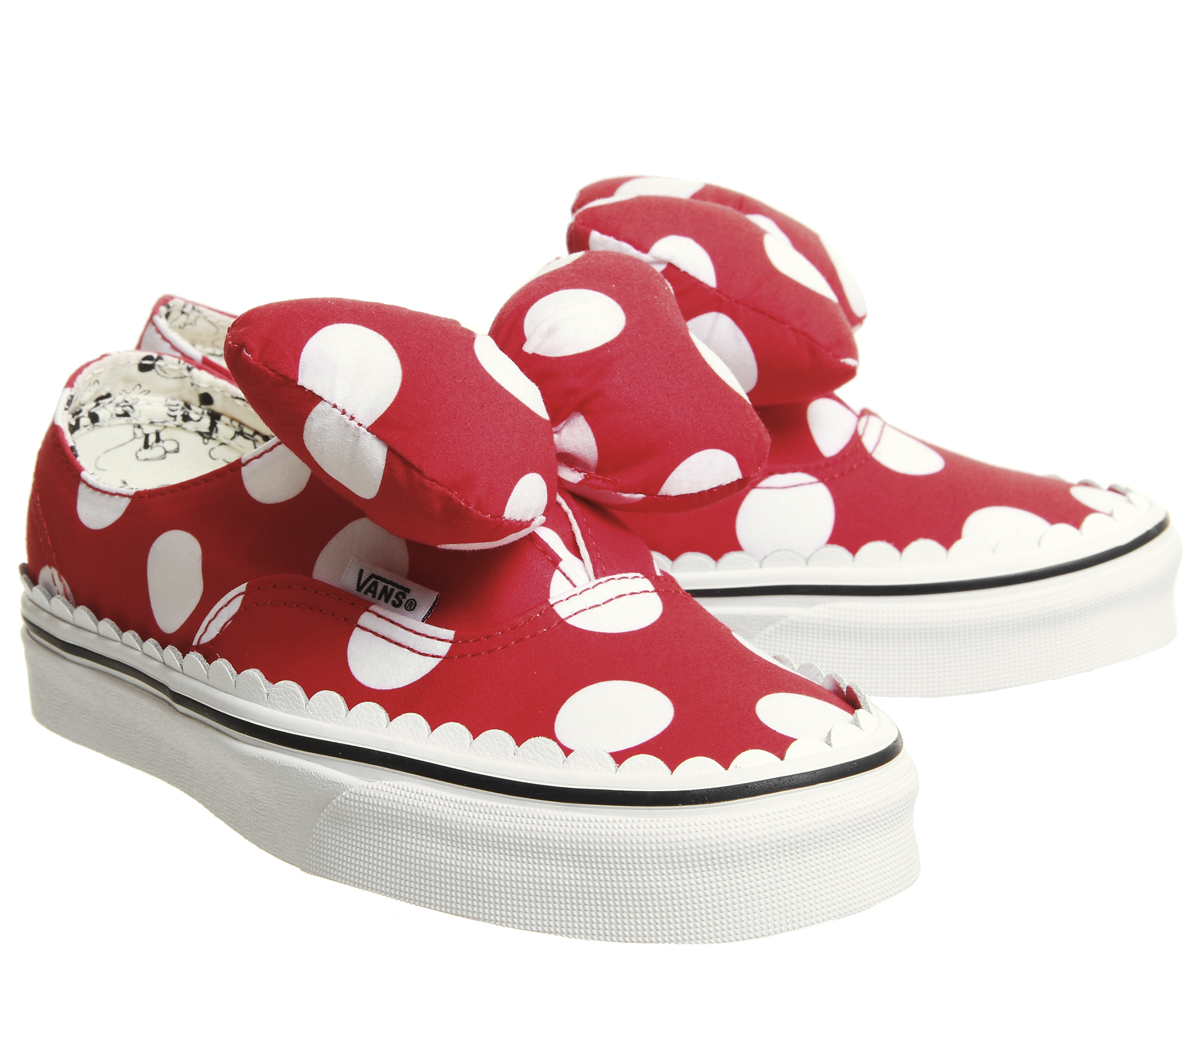 600513afd8a Details about Womens Vans Authentic Trainers Minnies Bow True White Disney  Trainers Shoes